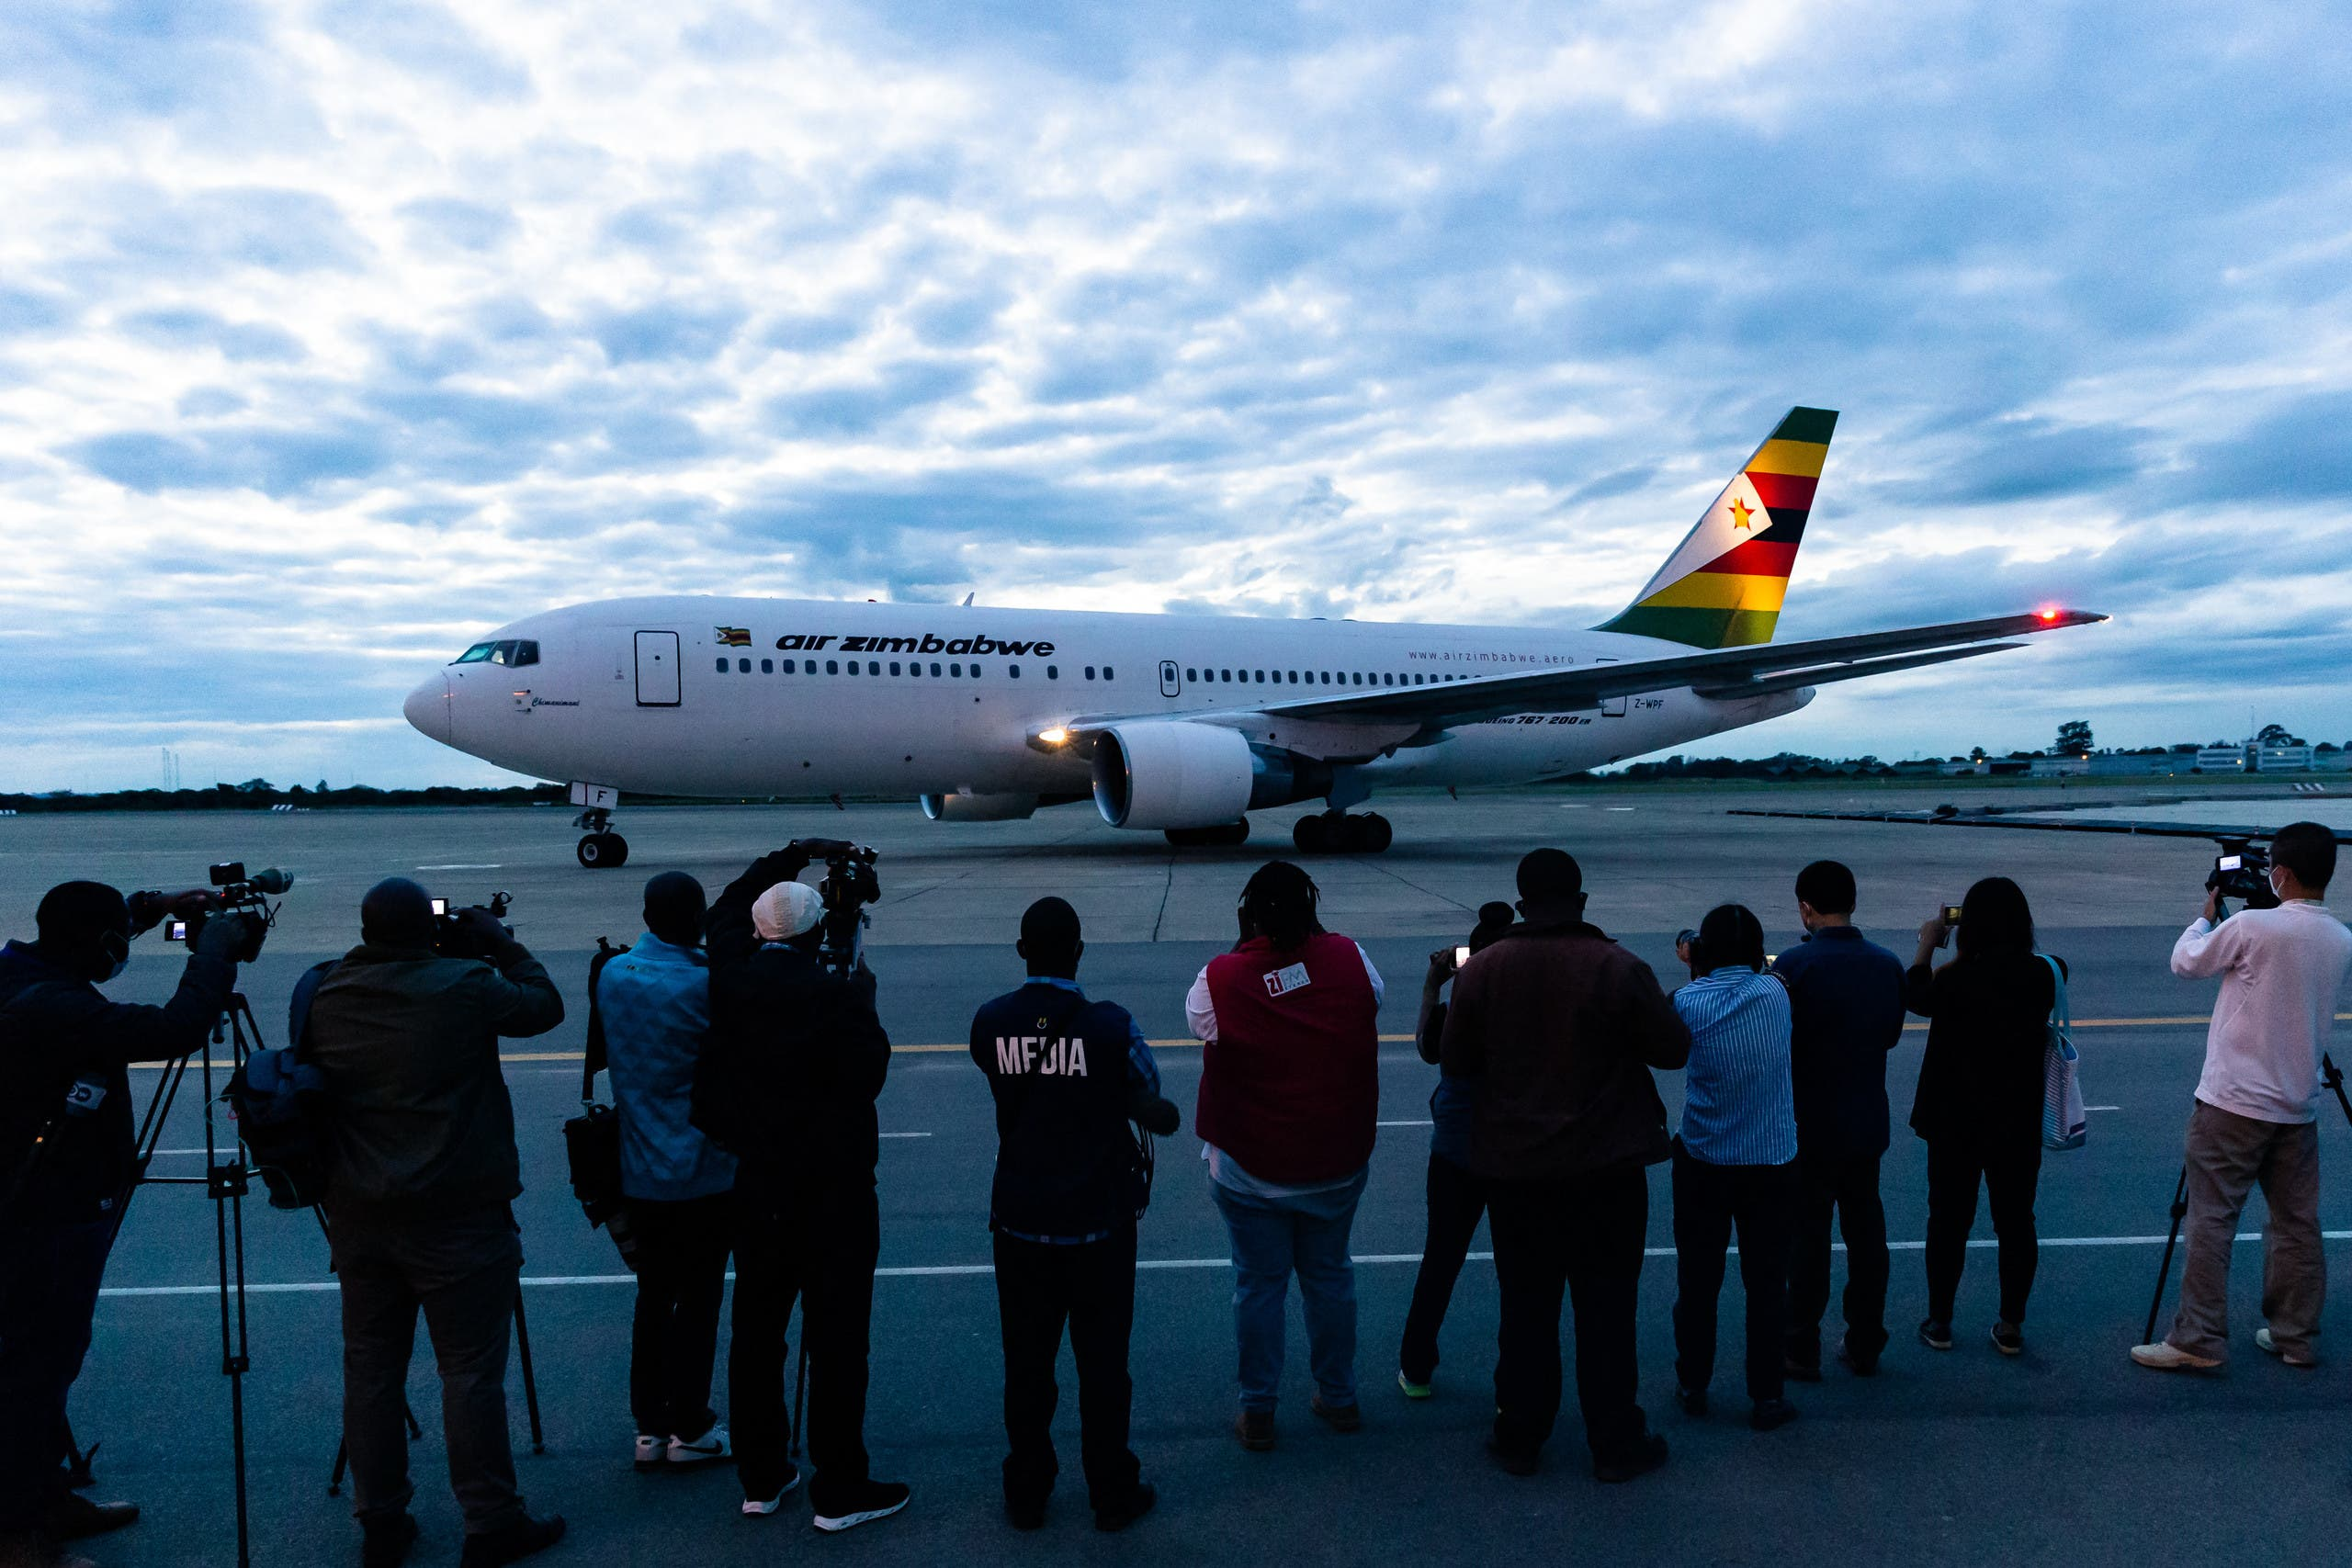 Journalists take footage as an Air Zimbabwe aeroplane arrives with a donation of 200,000 doses of the Sinopharm coronavirus vaccine from China on February 15, 2021 at the Robert Mugabe International Airport. (AFP)